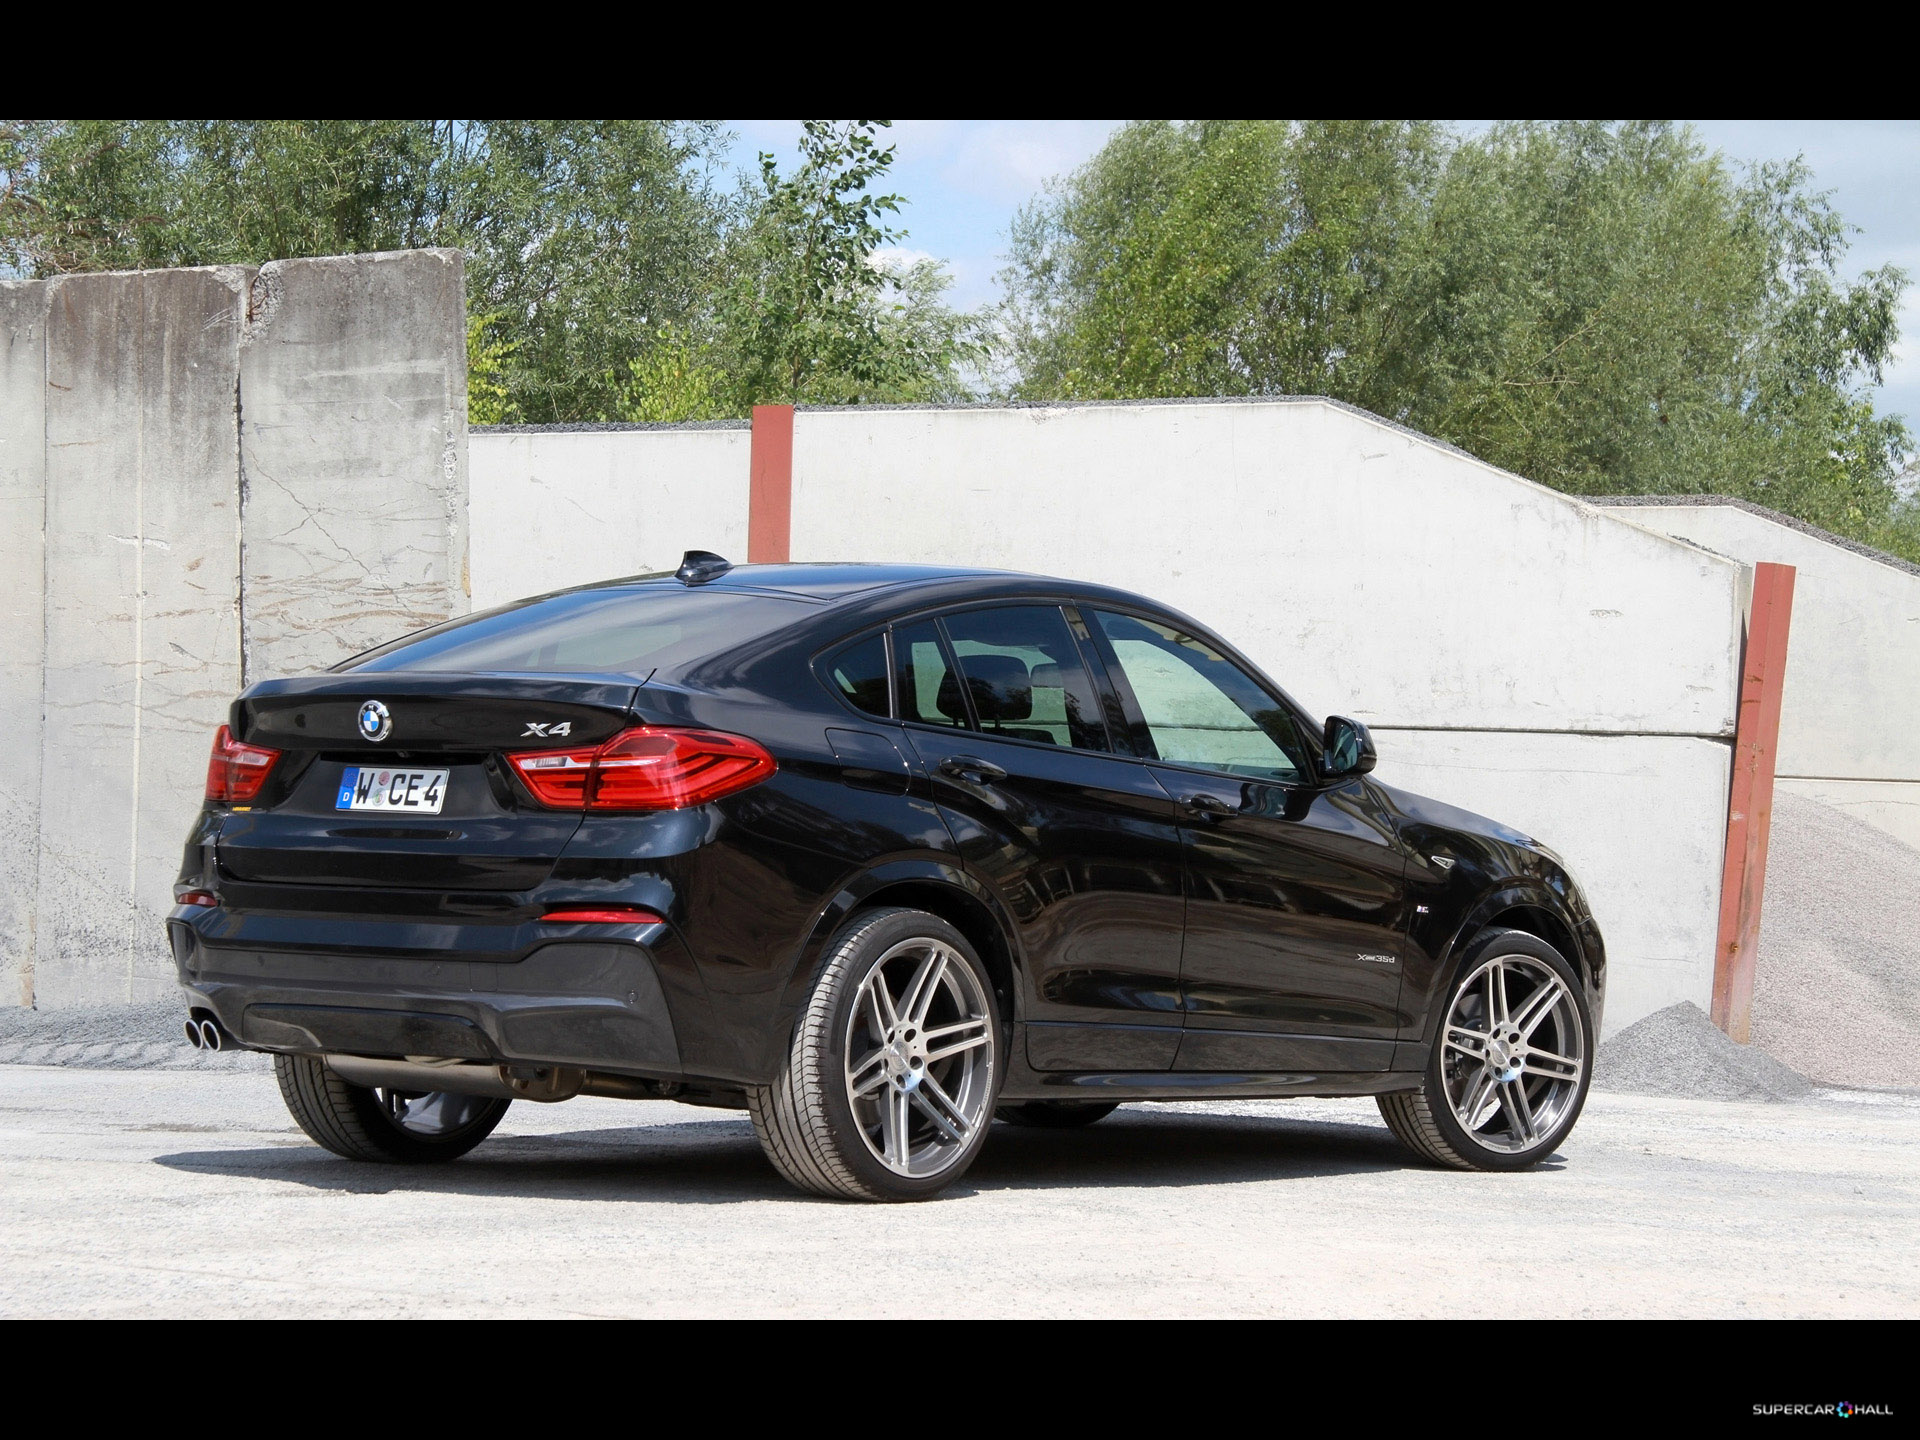 BMW X4 xDrive35d 2014 photo - 8